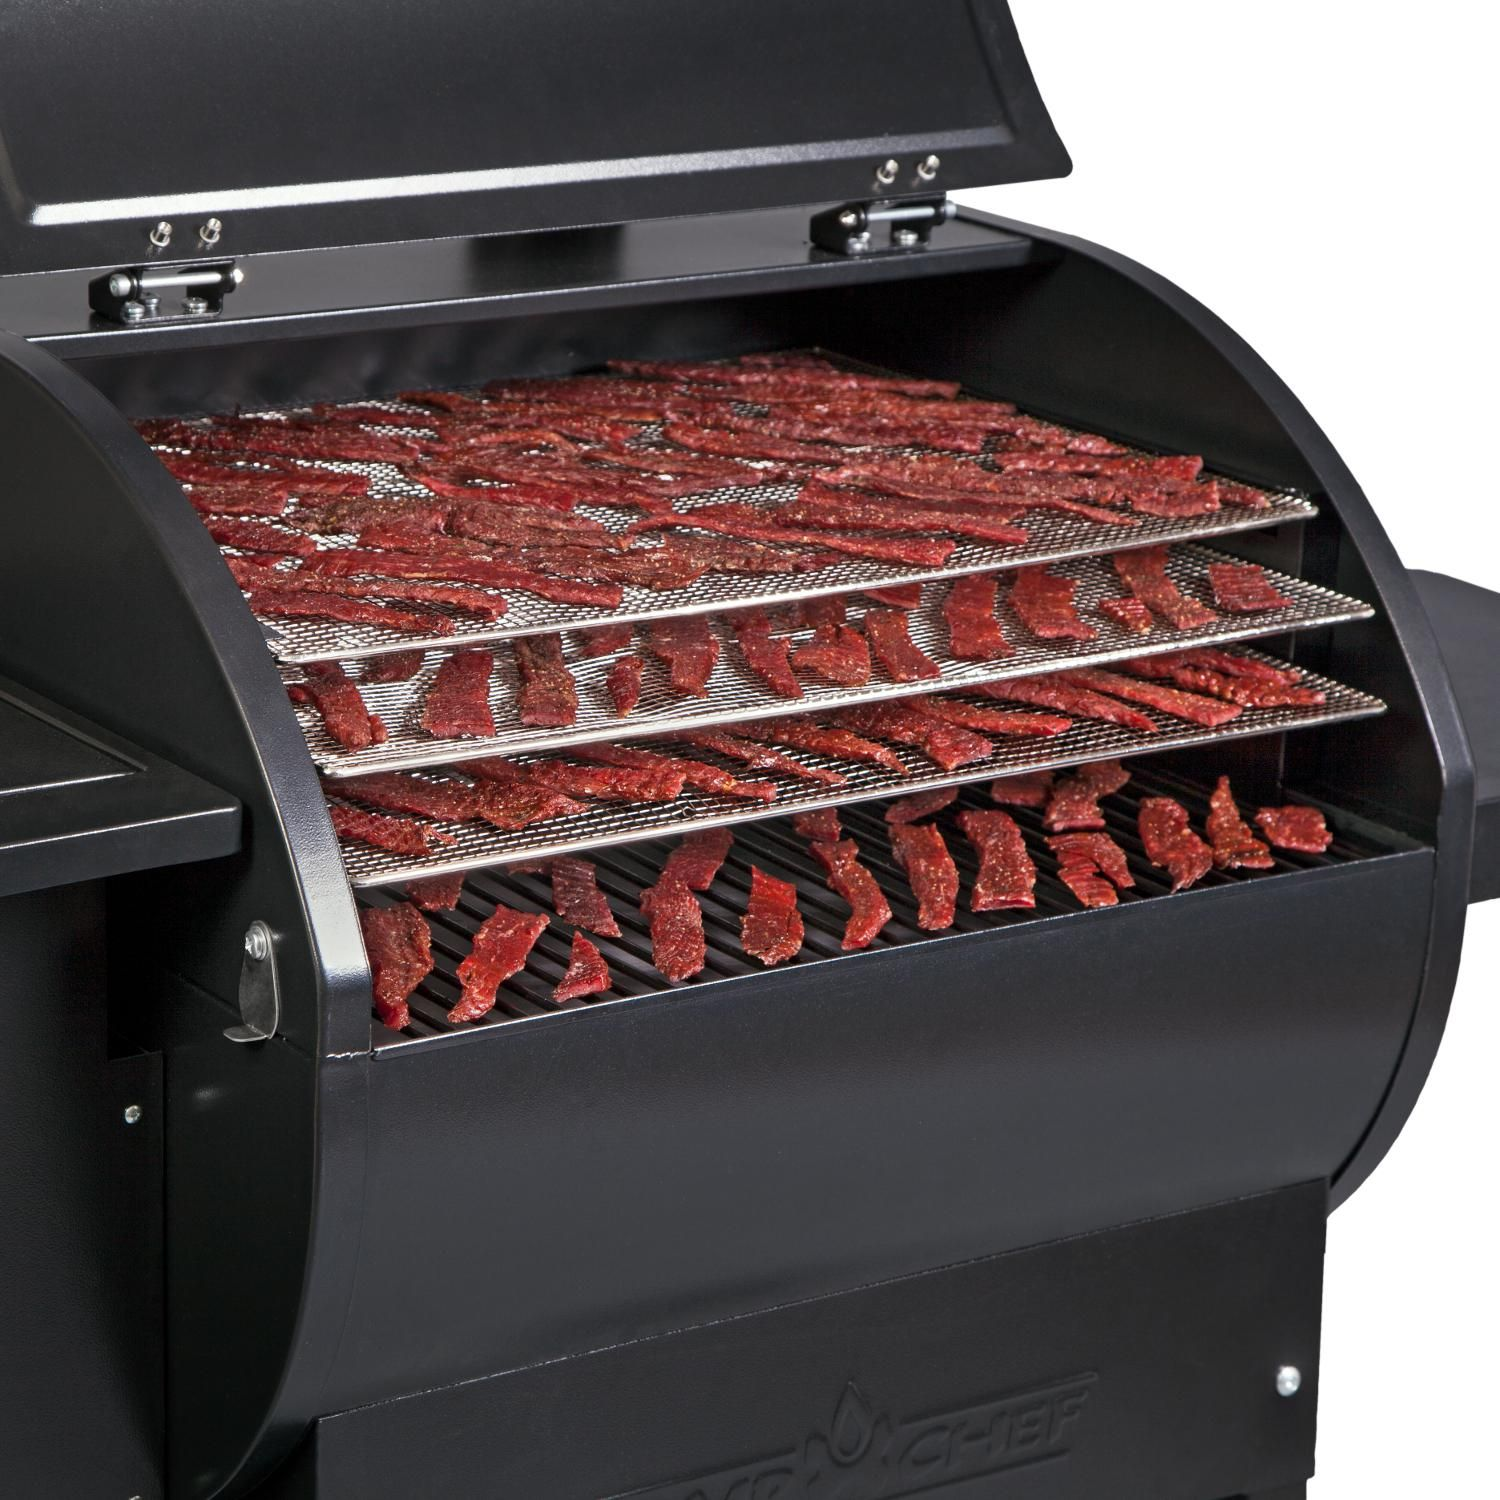 Camp Chef 24 Inch Pellet Grill Jerky Rack Pgjerky In 2020 Pellet Grill Grilling Smoked Jerky